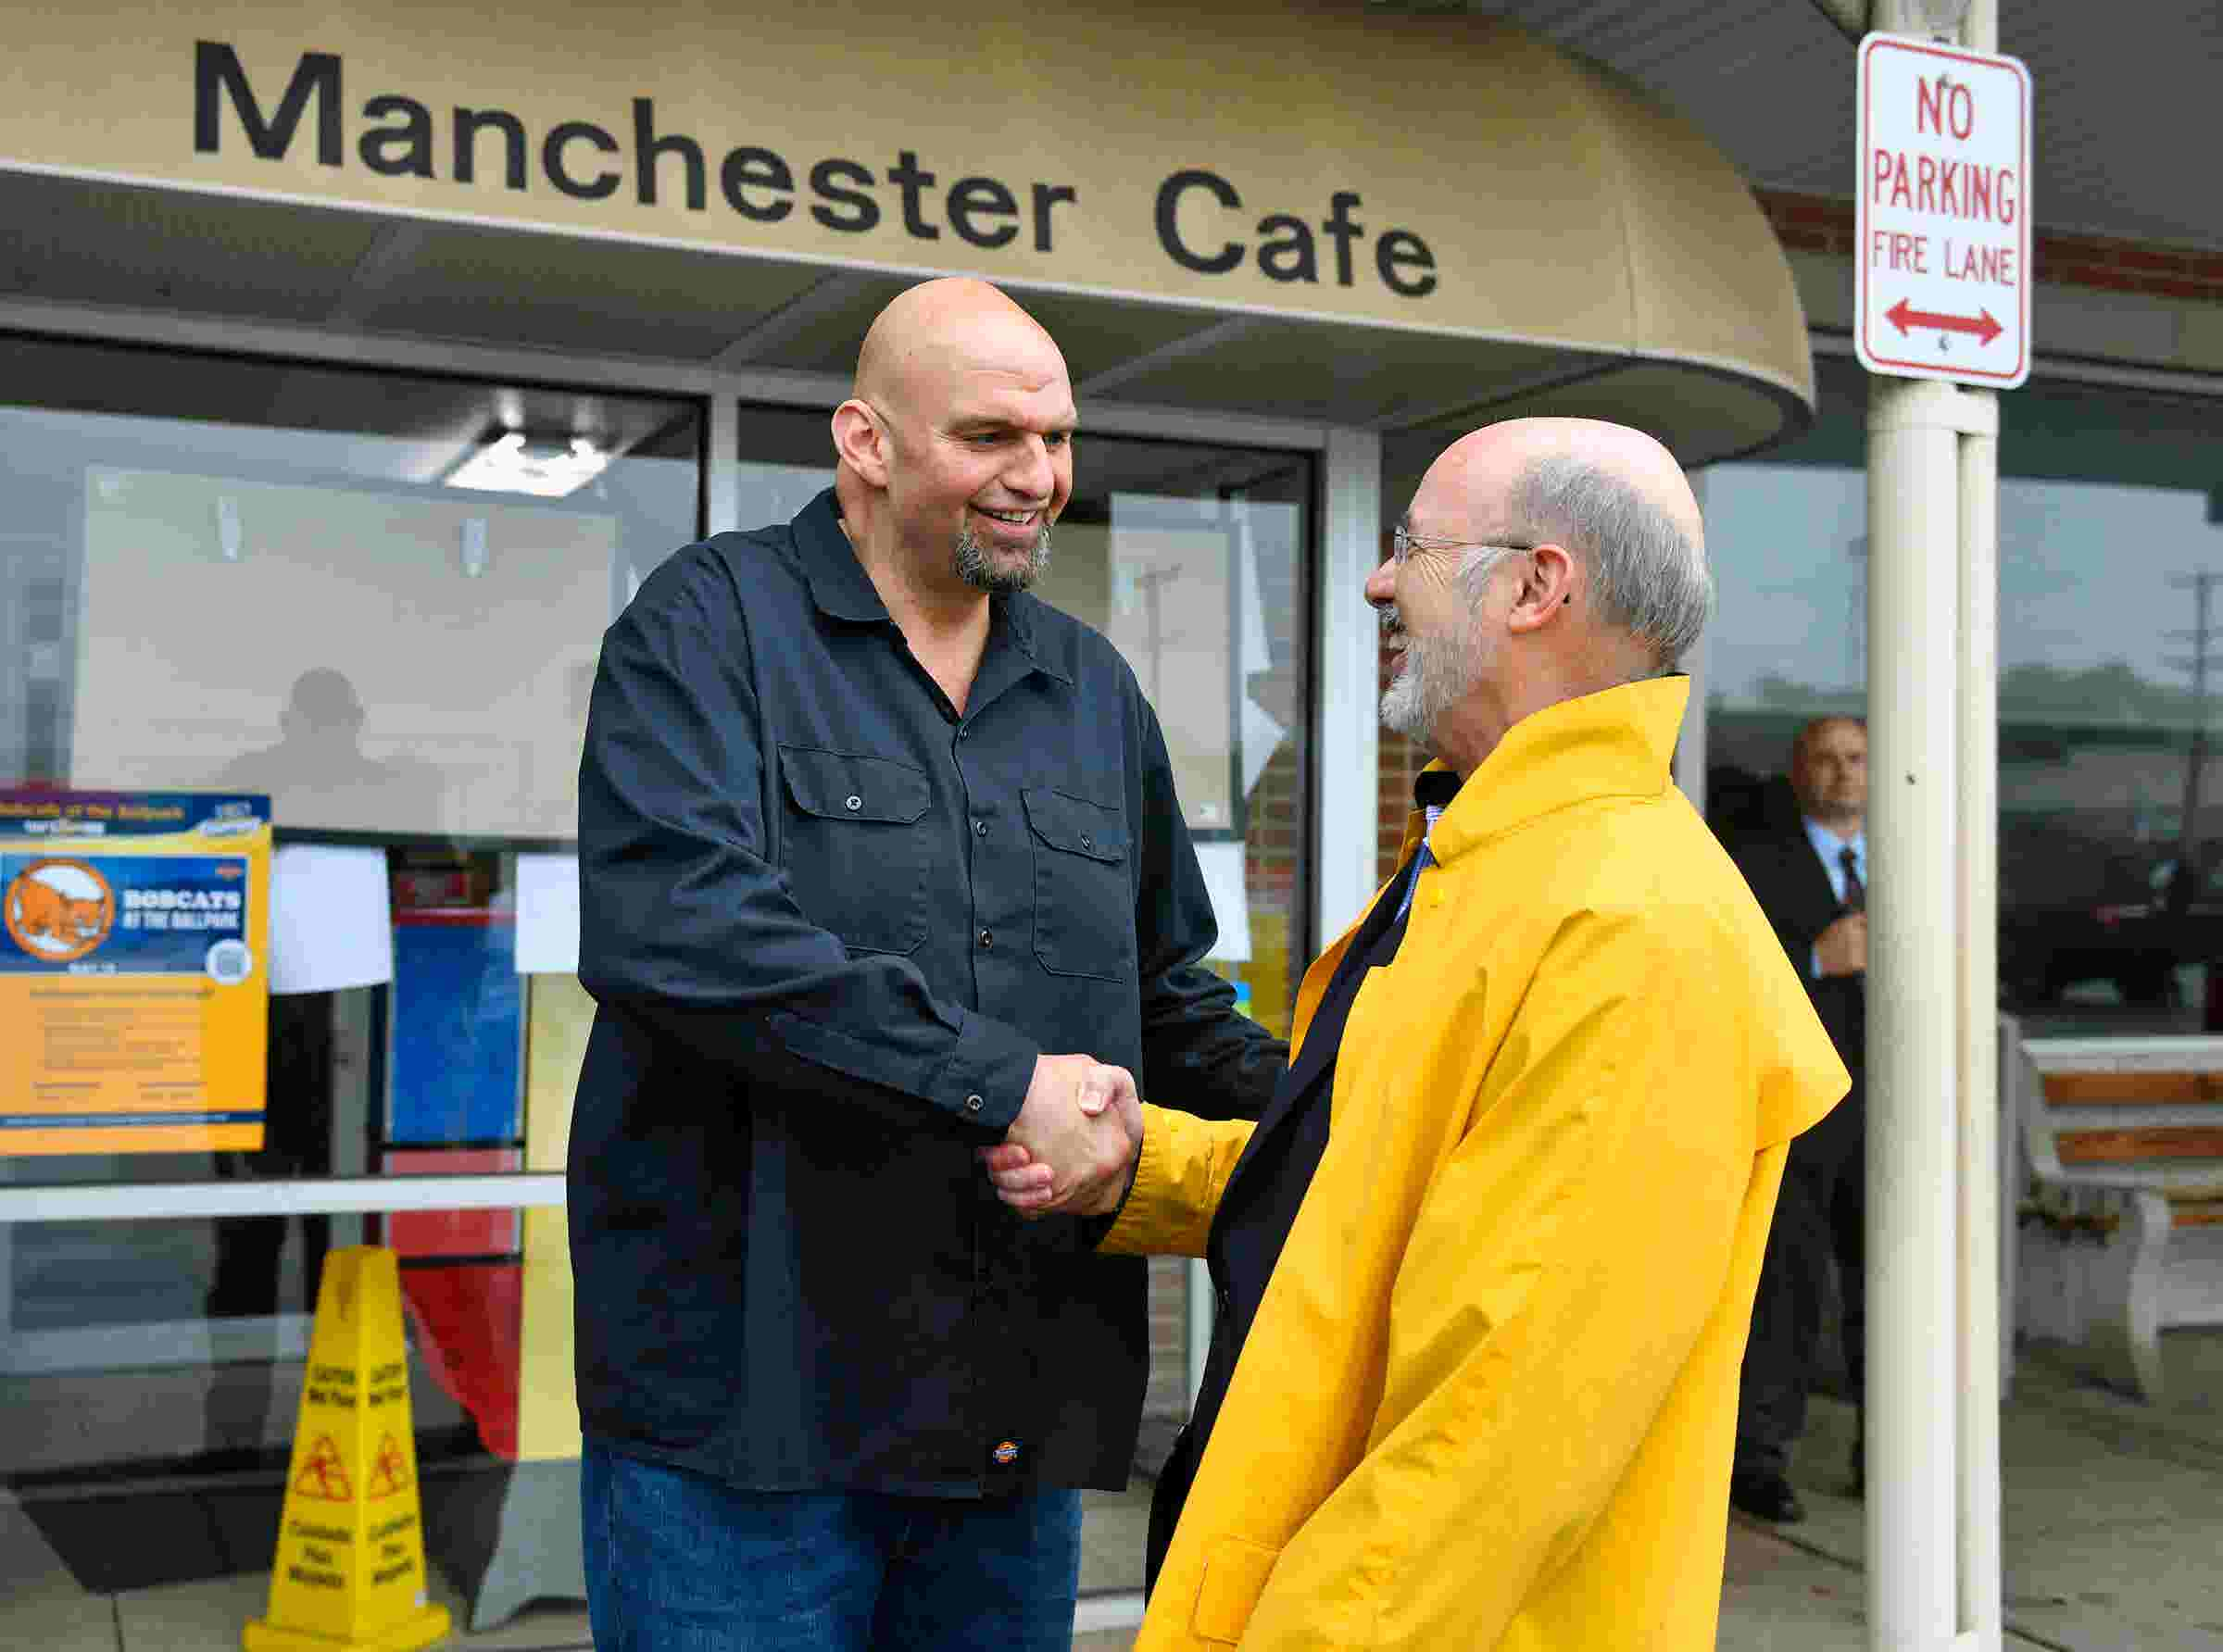 Pa Election Tom Wolf John Fetterman Meet For Lunch Cause A Stir